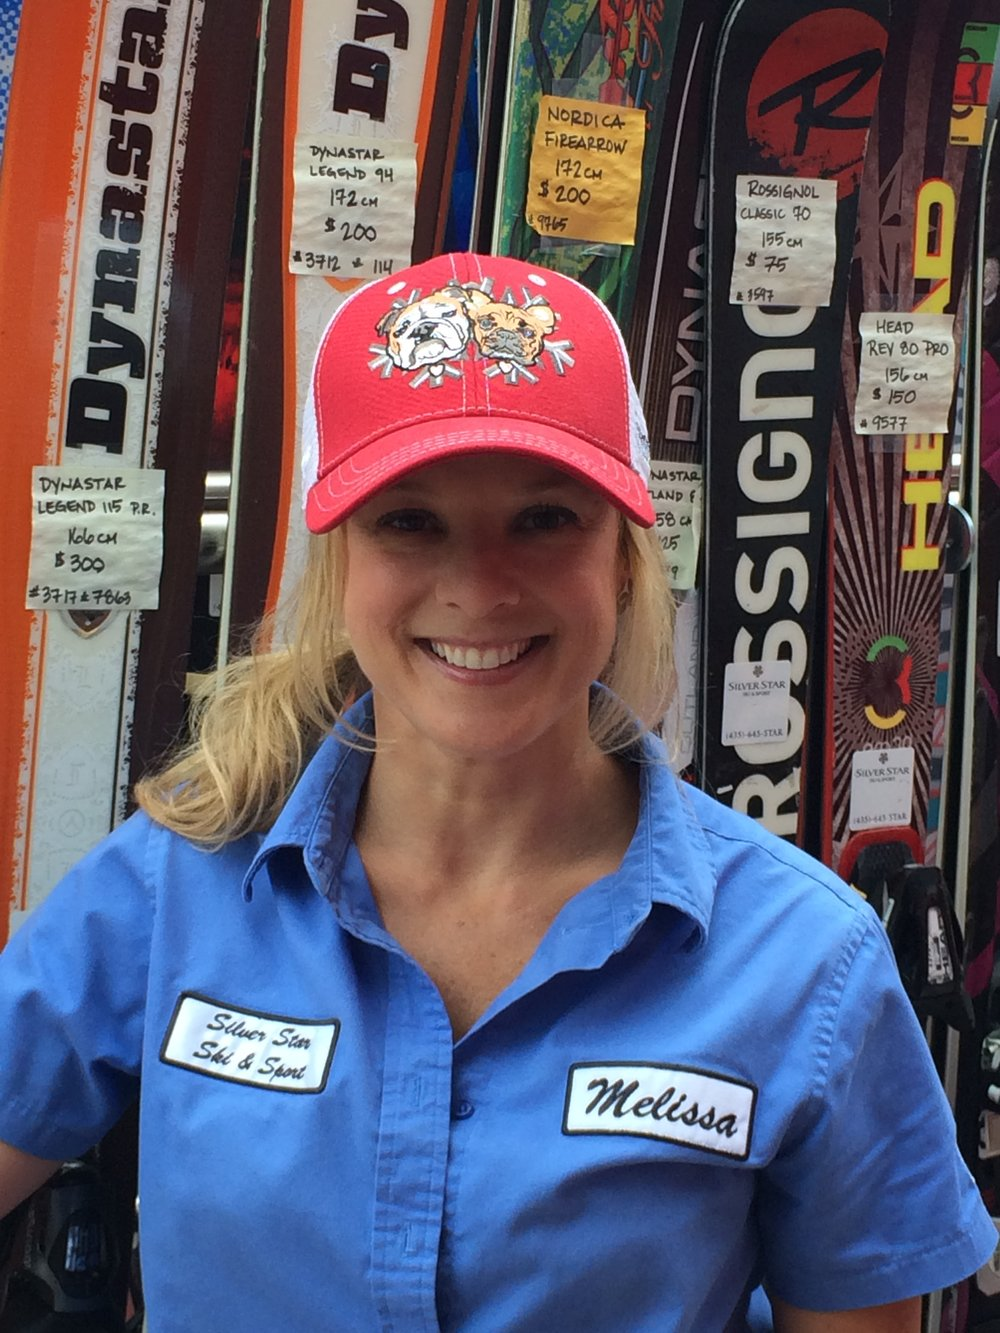 Melissa - Assistant Store Manager - Melissa has been with Silver Star Ski & Sport since fall of 2013.  Her and her husband hail from Tennessee but their love for the mountains called them out west.  Her southern charm is infectious!